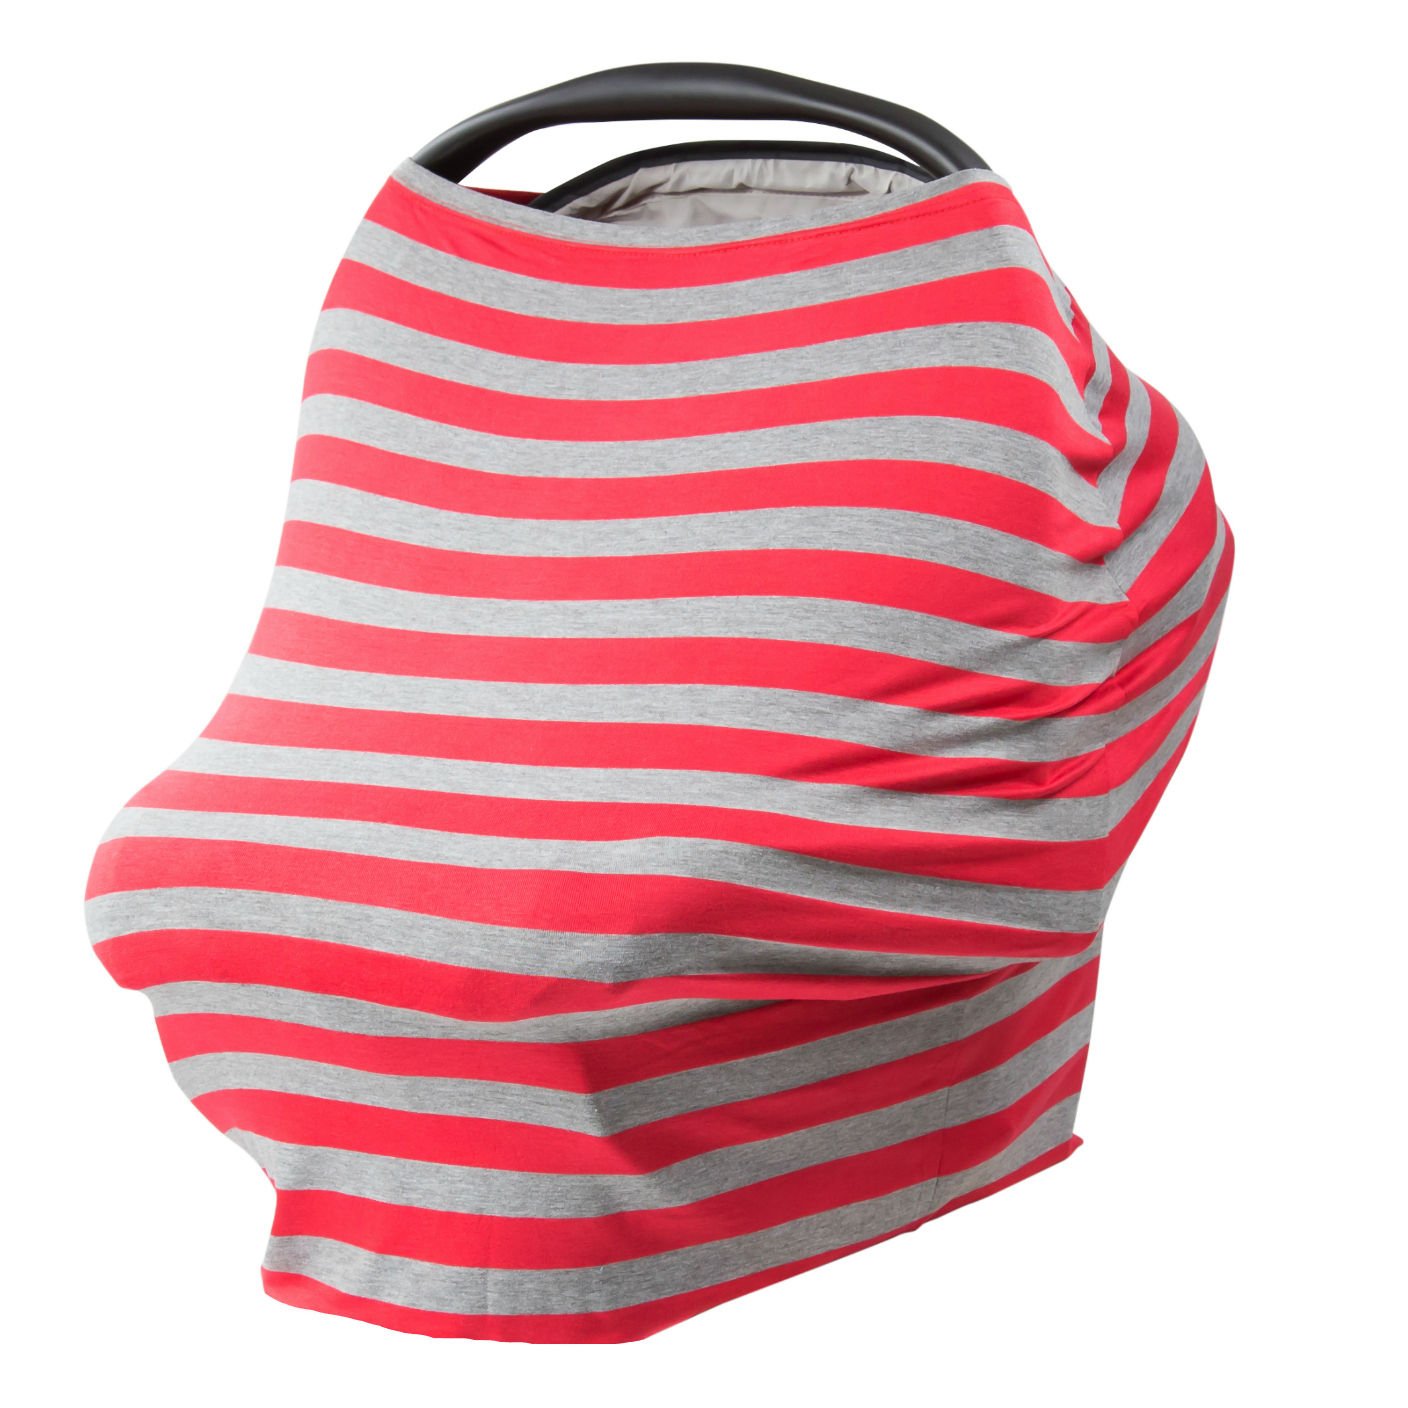 JLIKA Baby Car Seat Canopy Cover and Stretchy Nursing Cover- Gray Red Stripe